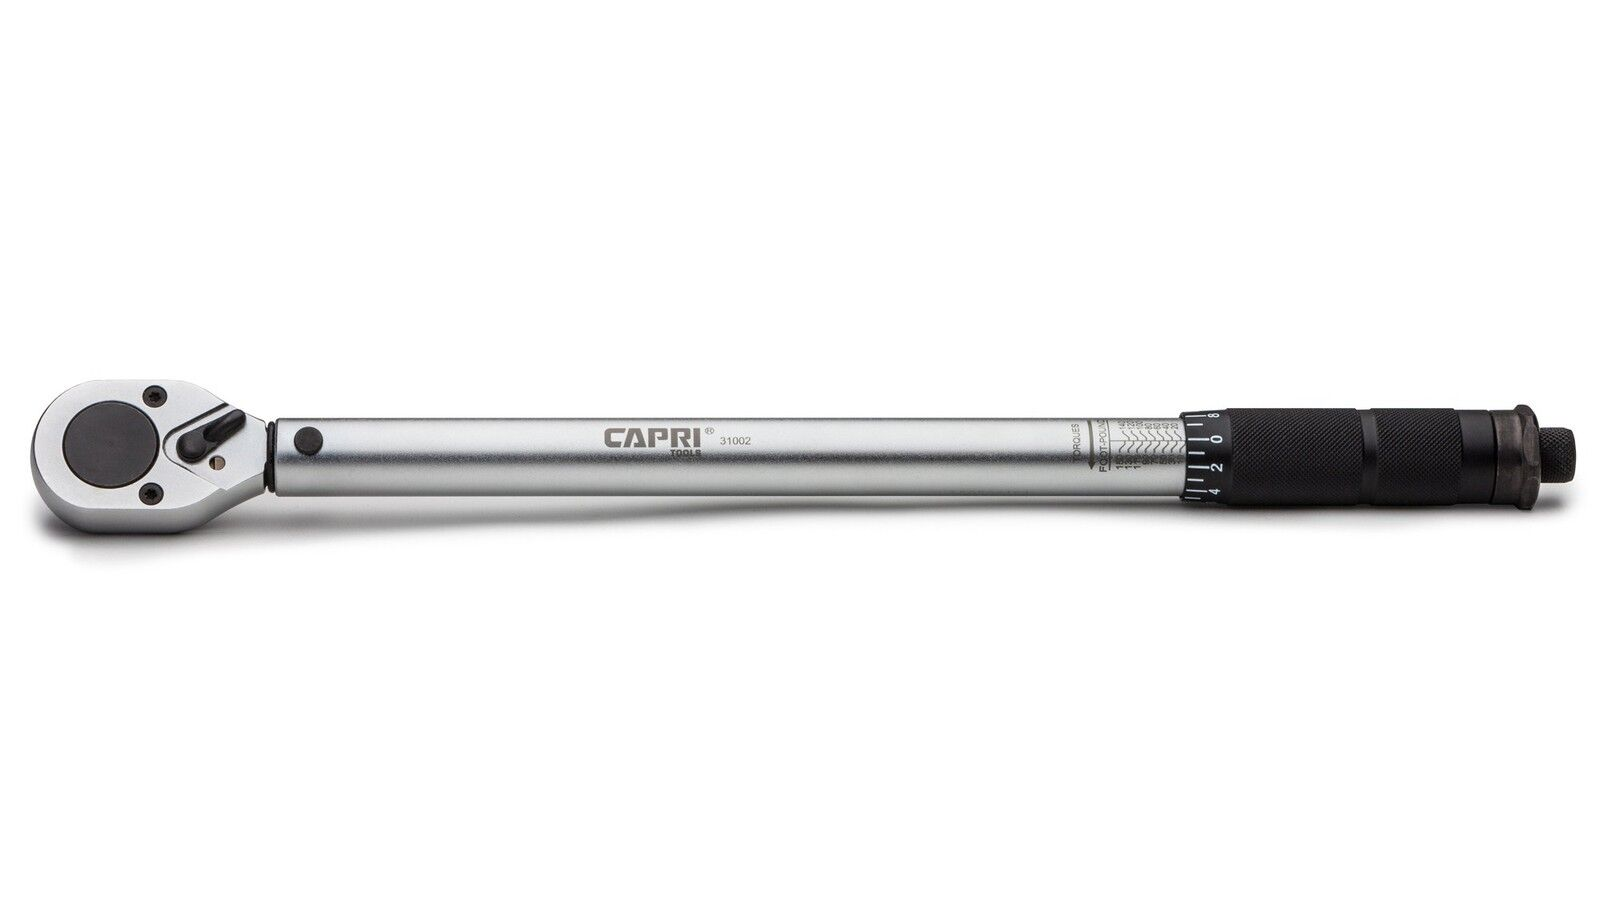 Capri Tools 31002 10 to 150-Foot Pound Torque Wrench, 1/2-In